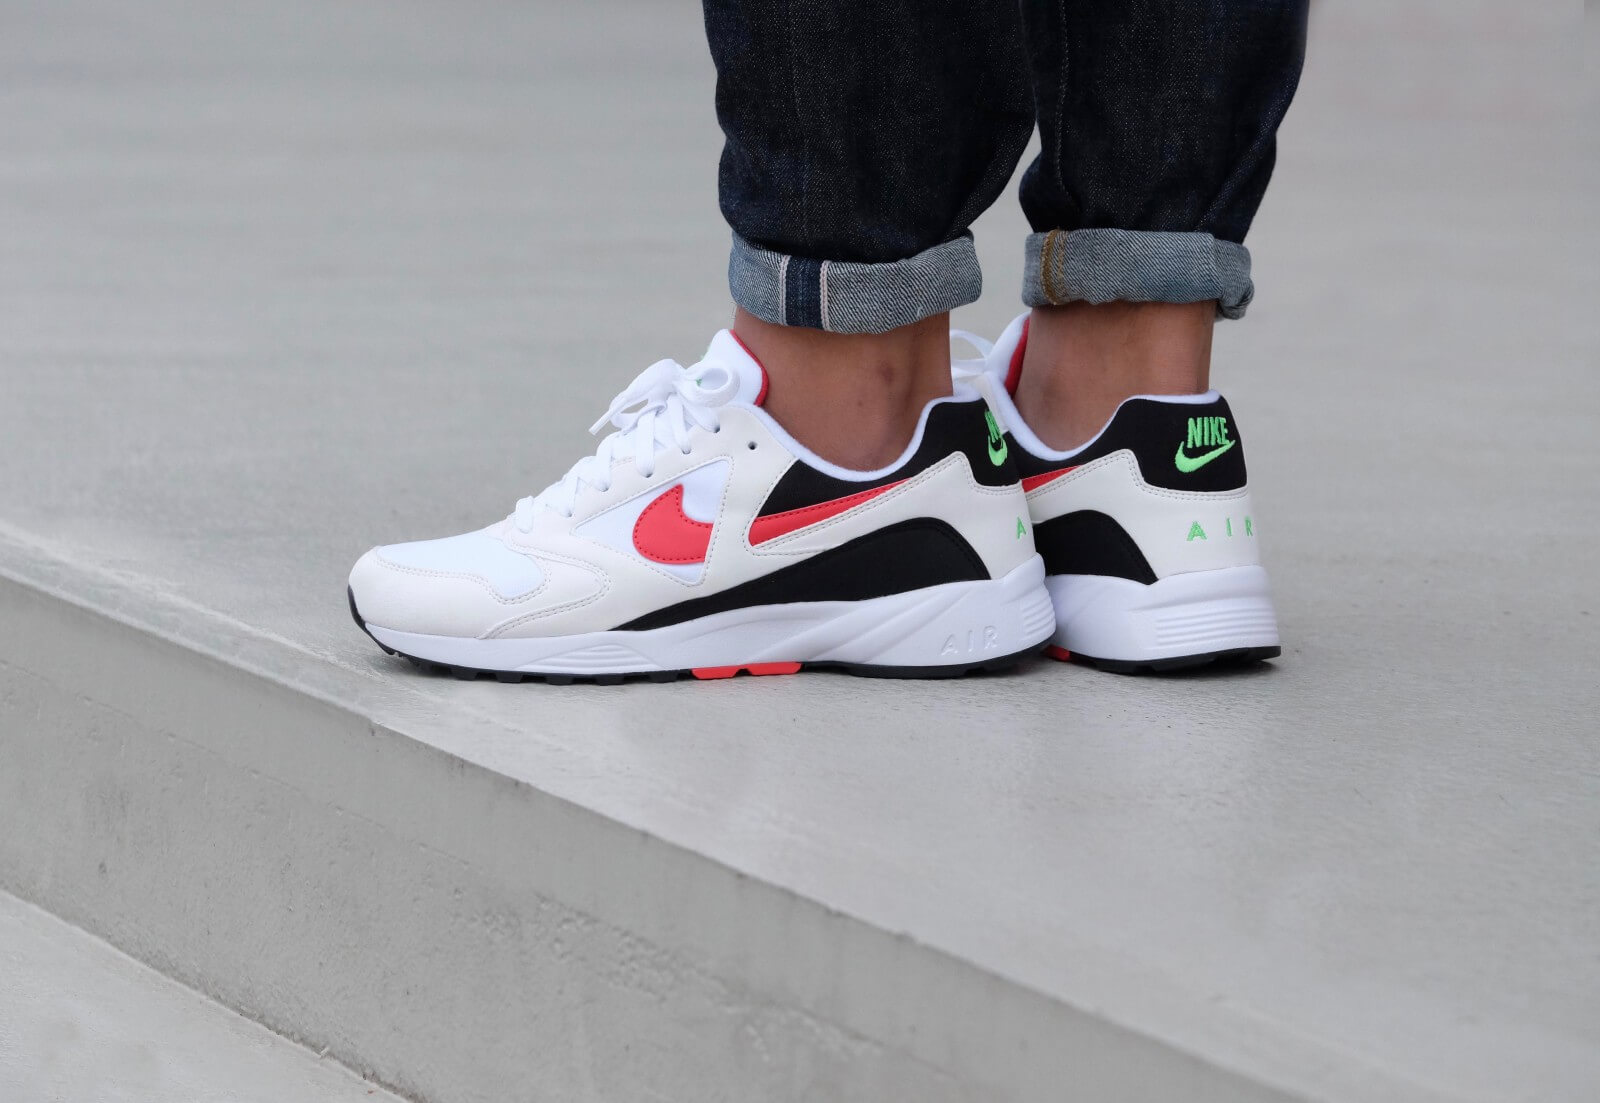 Nike Air Icarus Extra White/Atomic Red